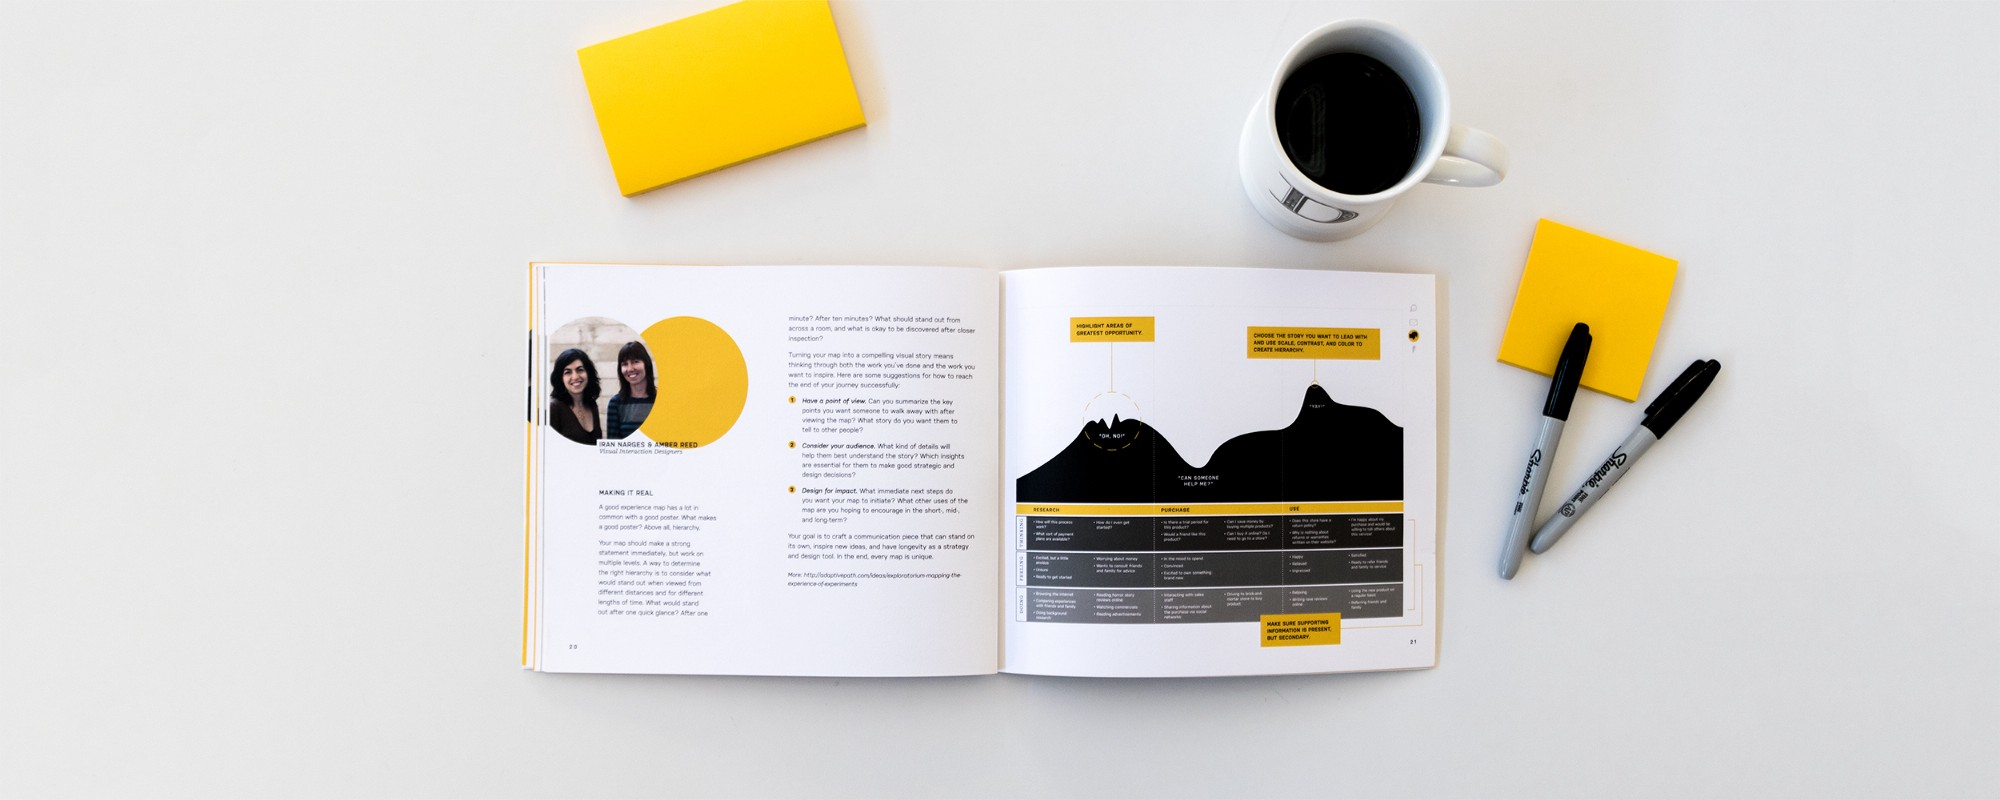 Download Our Guide To Experience Mapping One Design Community Medium - Make points on a map